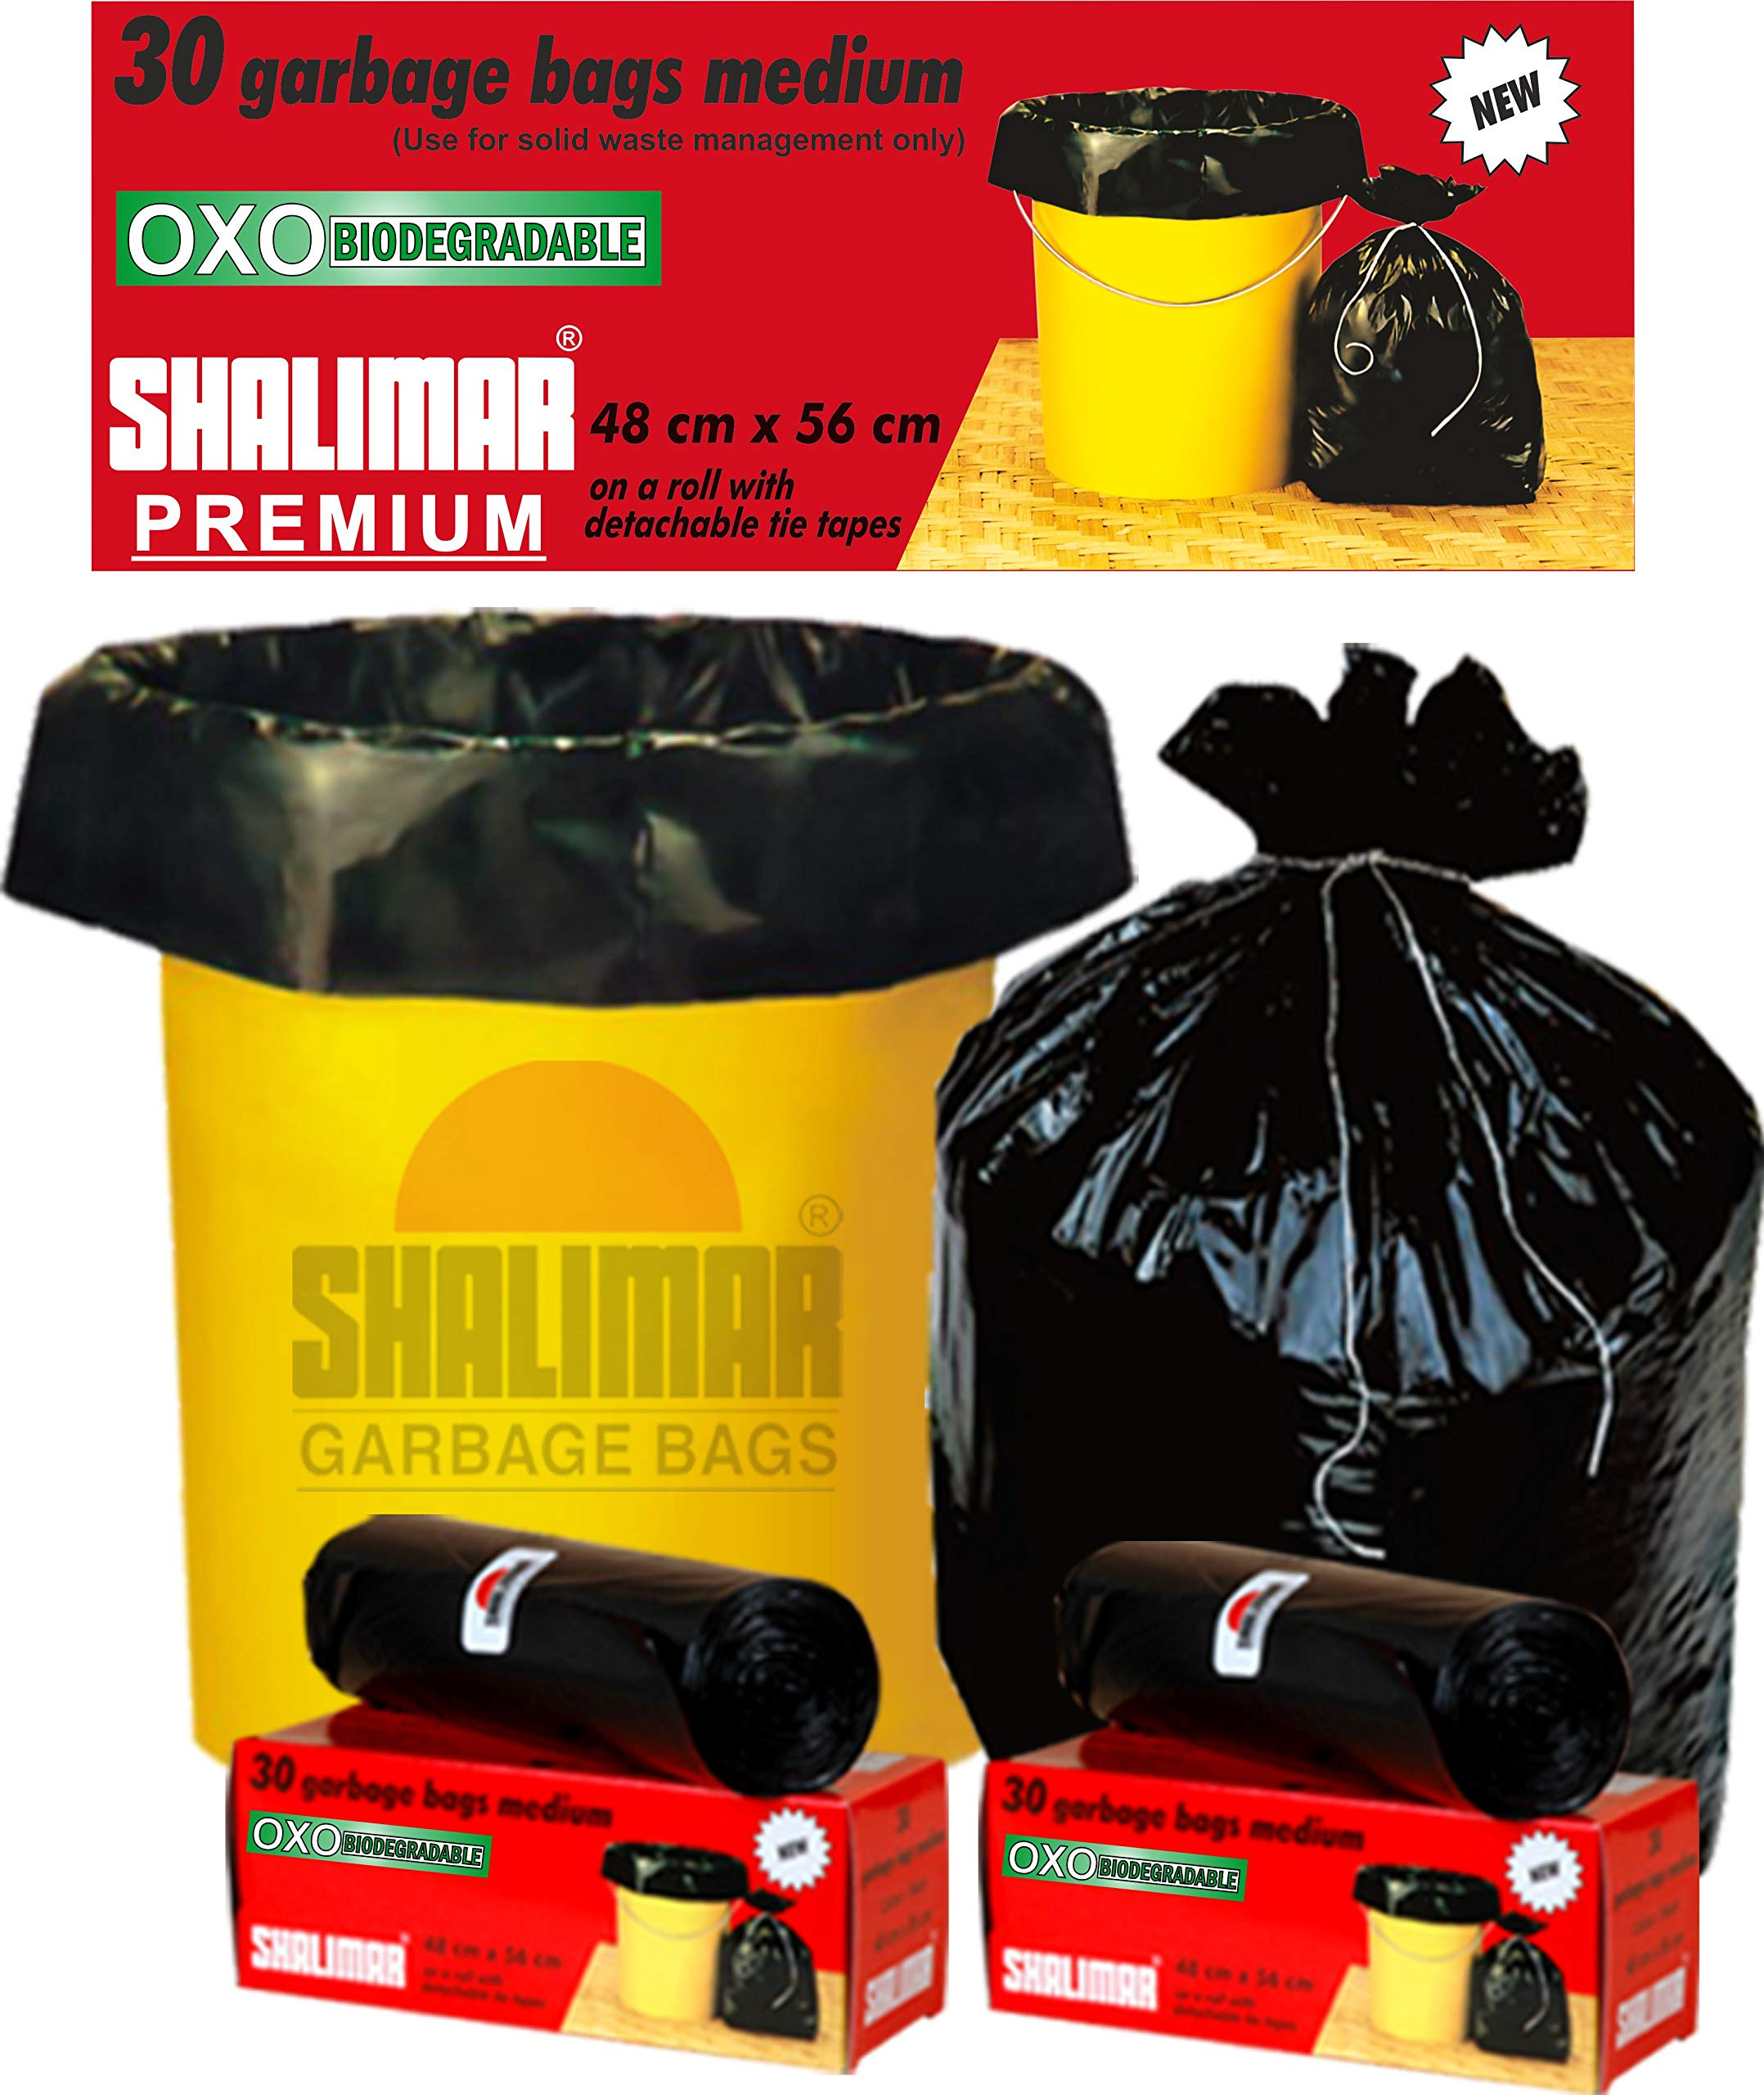 Shalimar Premium OXO - Biodegradable Garbage Bags (Medium) Size 48 cm x 56 cm 6 Rolls (180 Bags) (Black Colour) product image